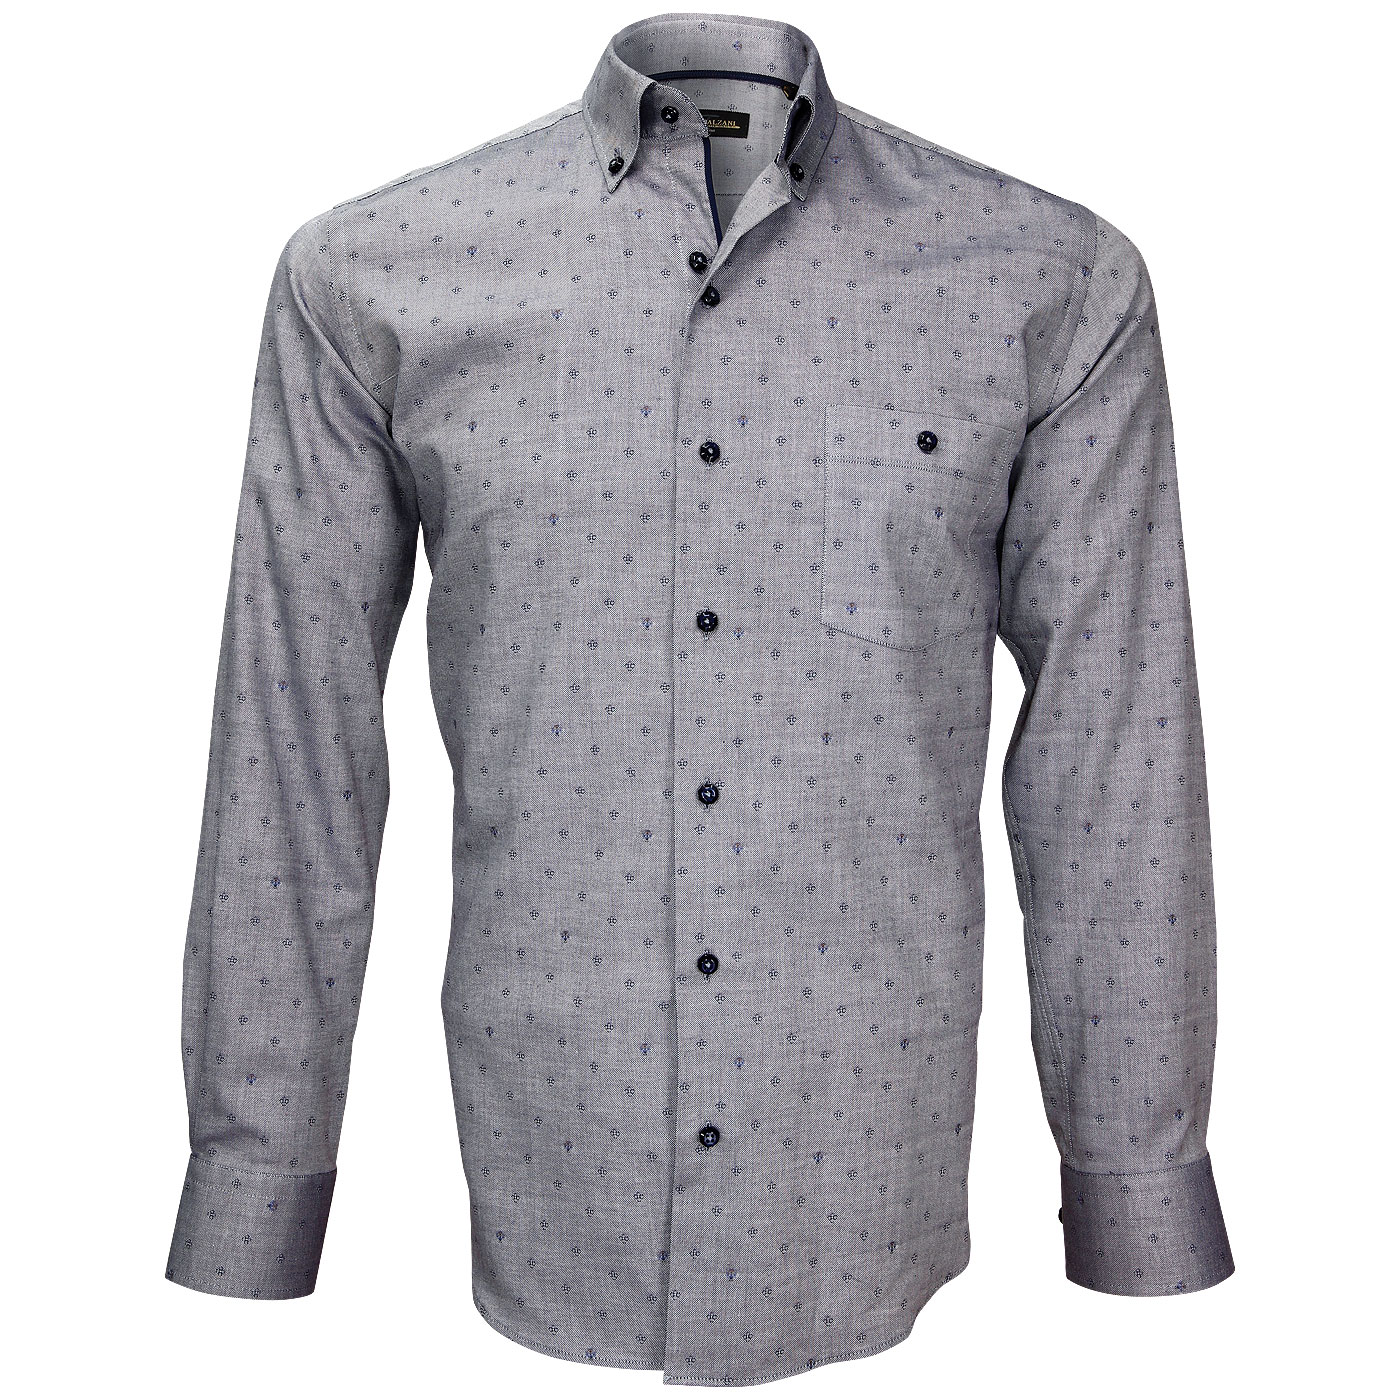 Your Grey Shirt Delived at Home in  48 Hours Free Up 70 €